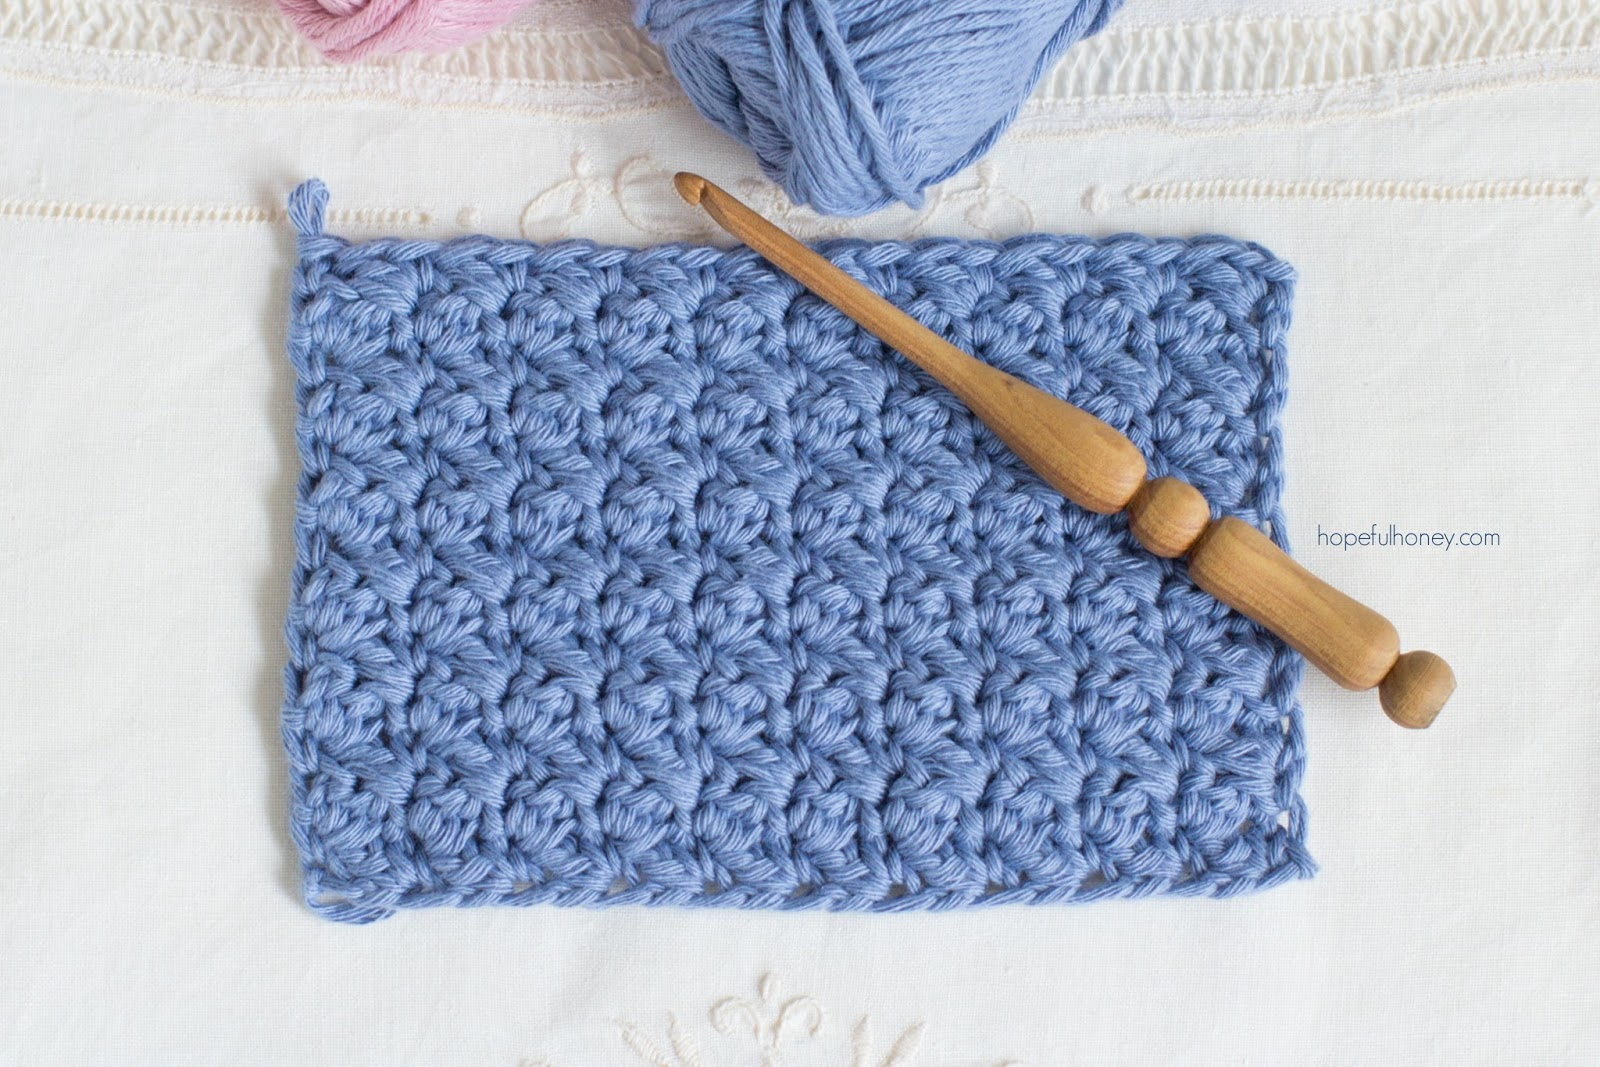 Video How To Crochet : Hopeful Honey Craft, Crochet, Create: How To: Crochet The Suzette ...